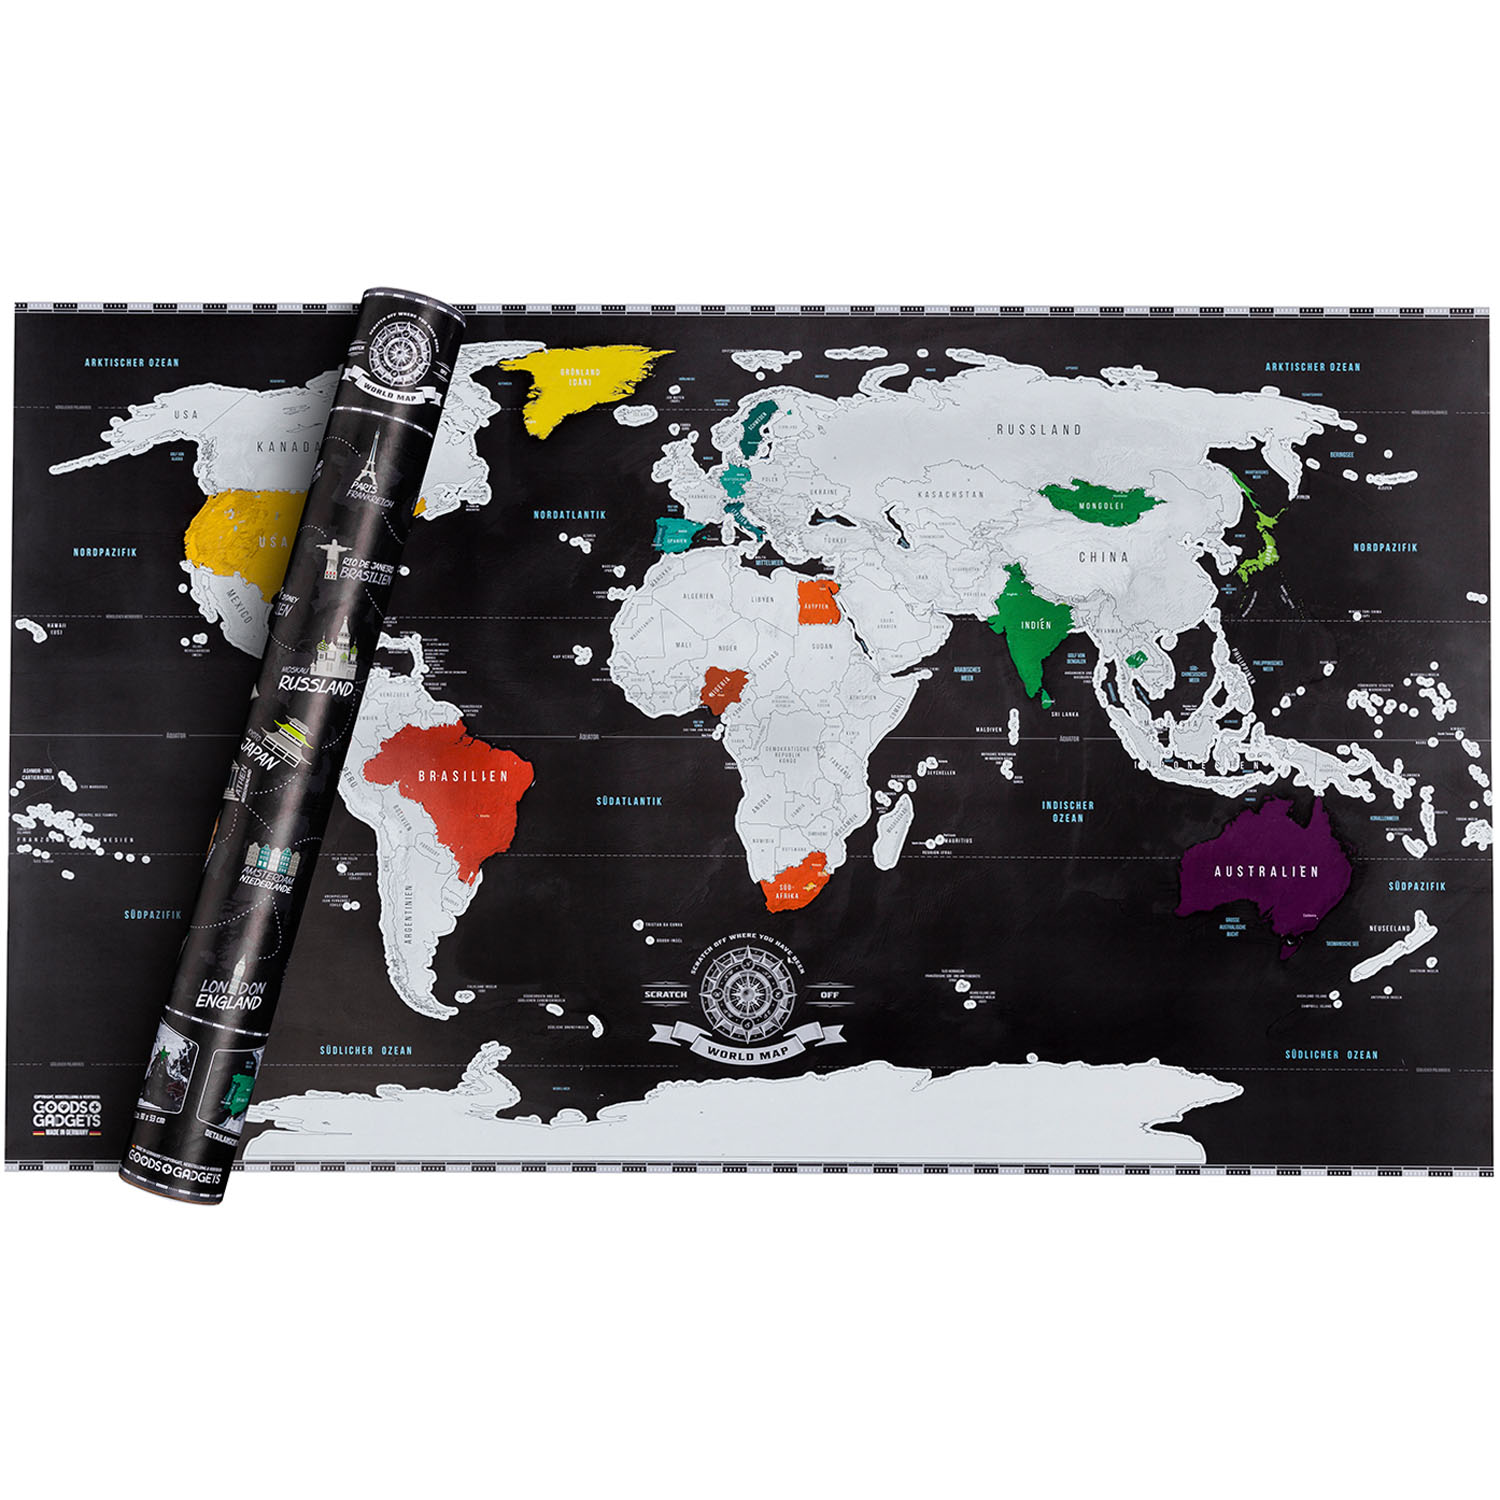 scrape off world map deluxe luxus limited edition. Black Bedroom Furniture Sets. Home Design Ideas